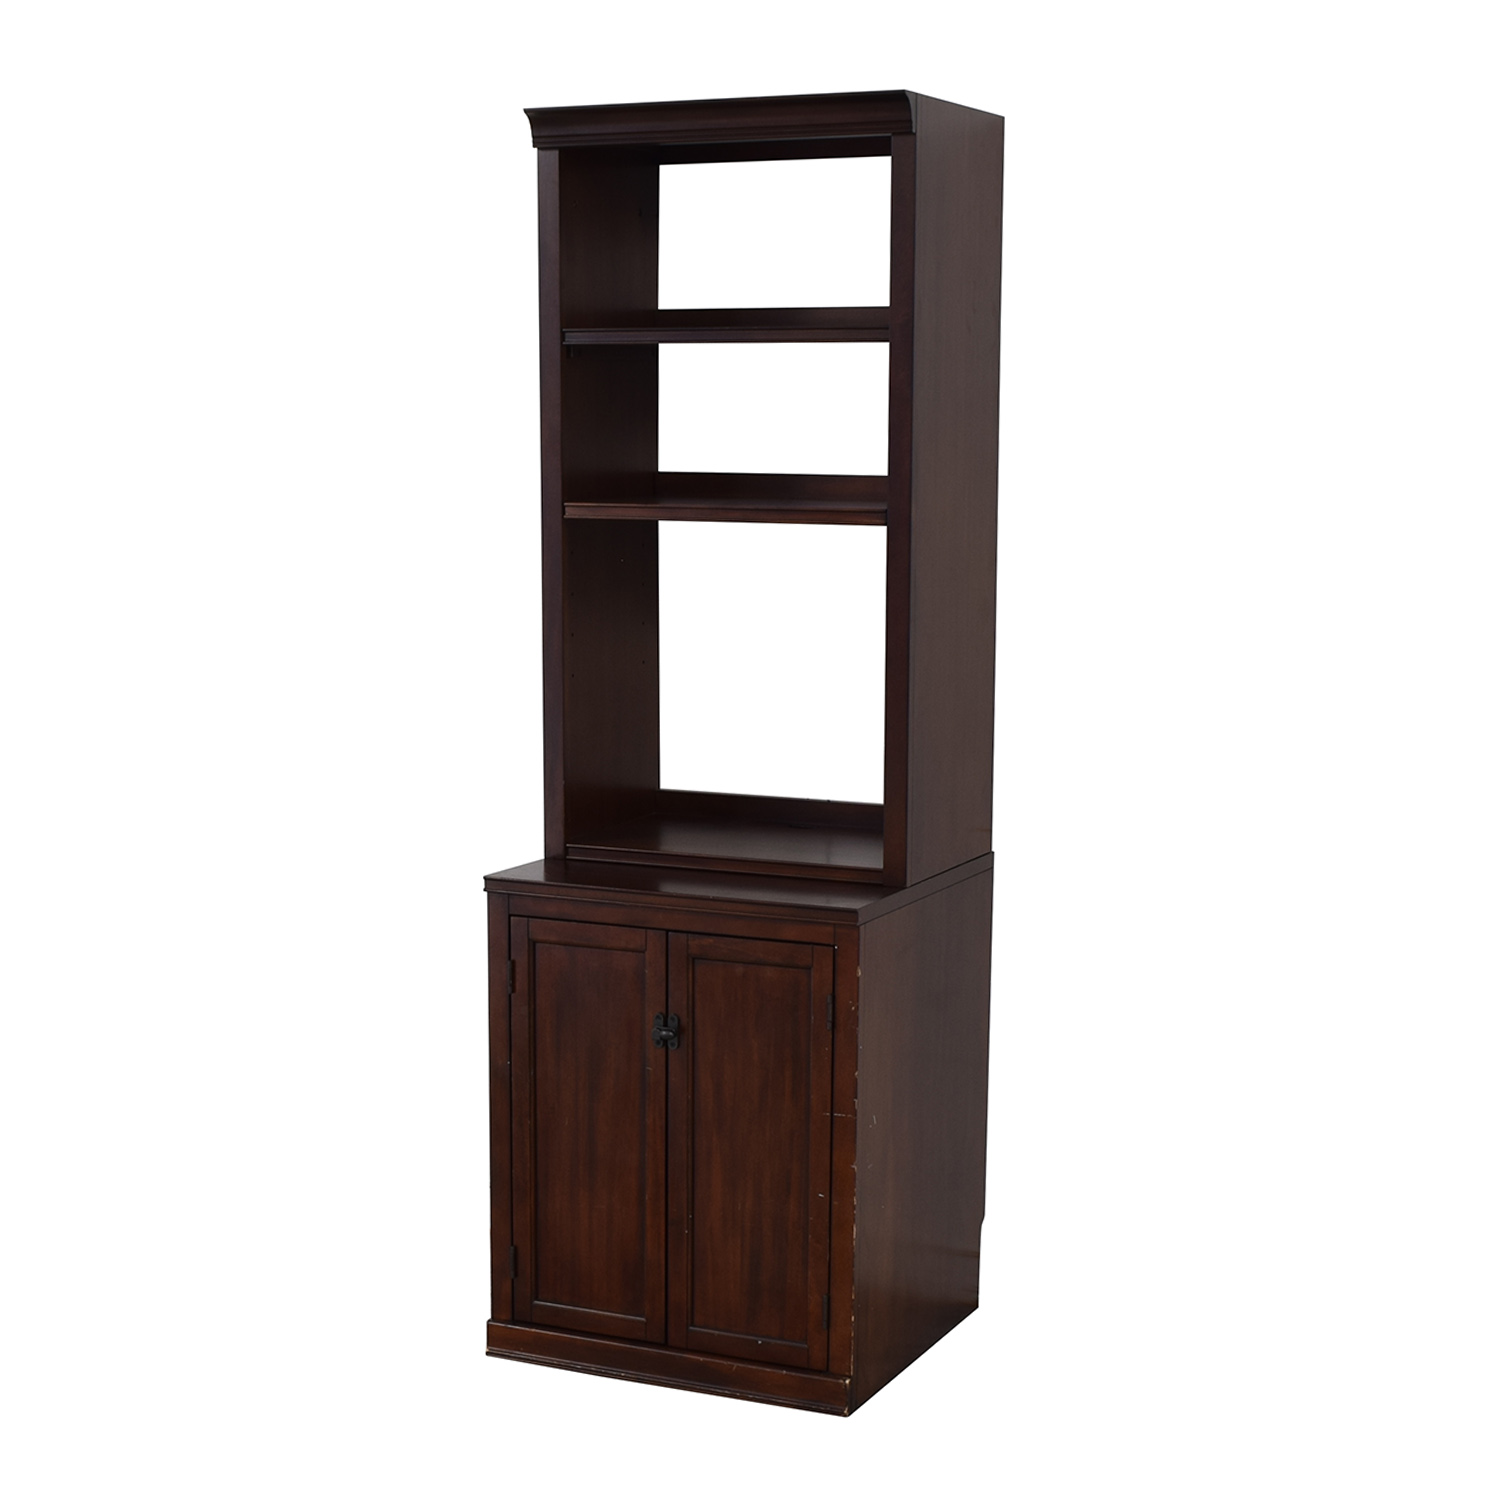 Pottery Barn Bookcase with Storage Cabinet Pottery Barn